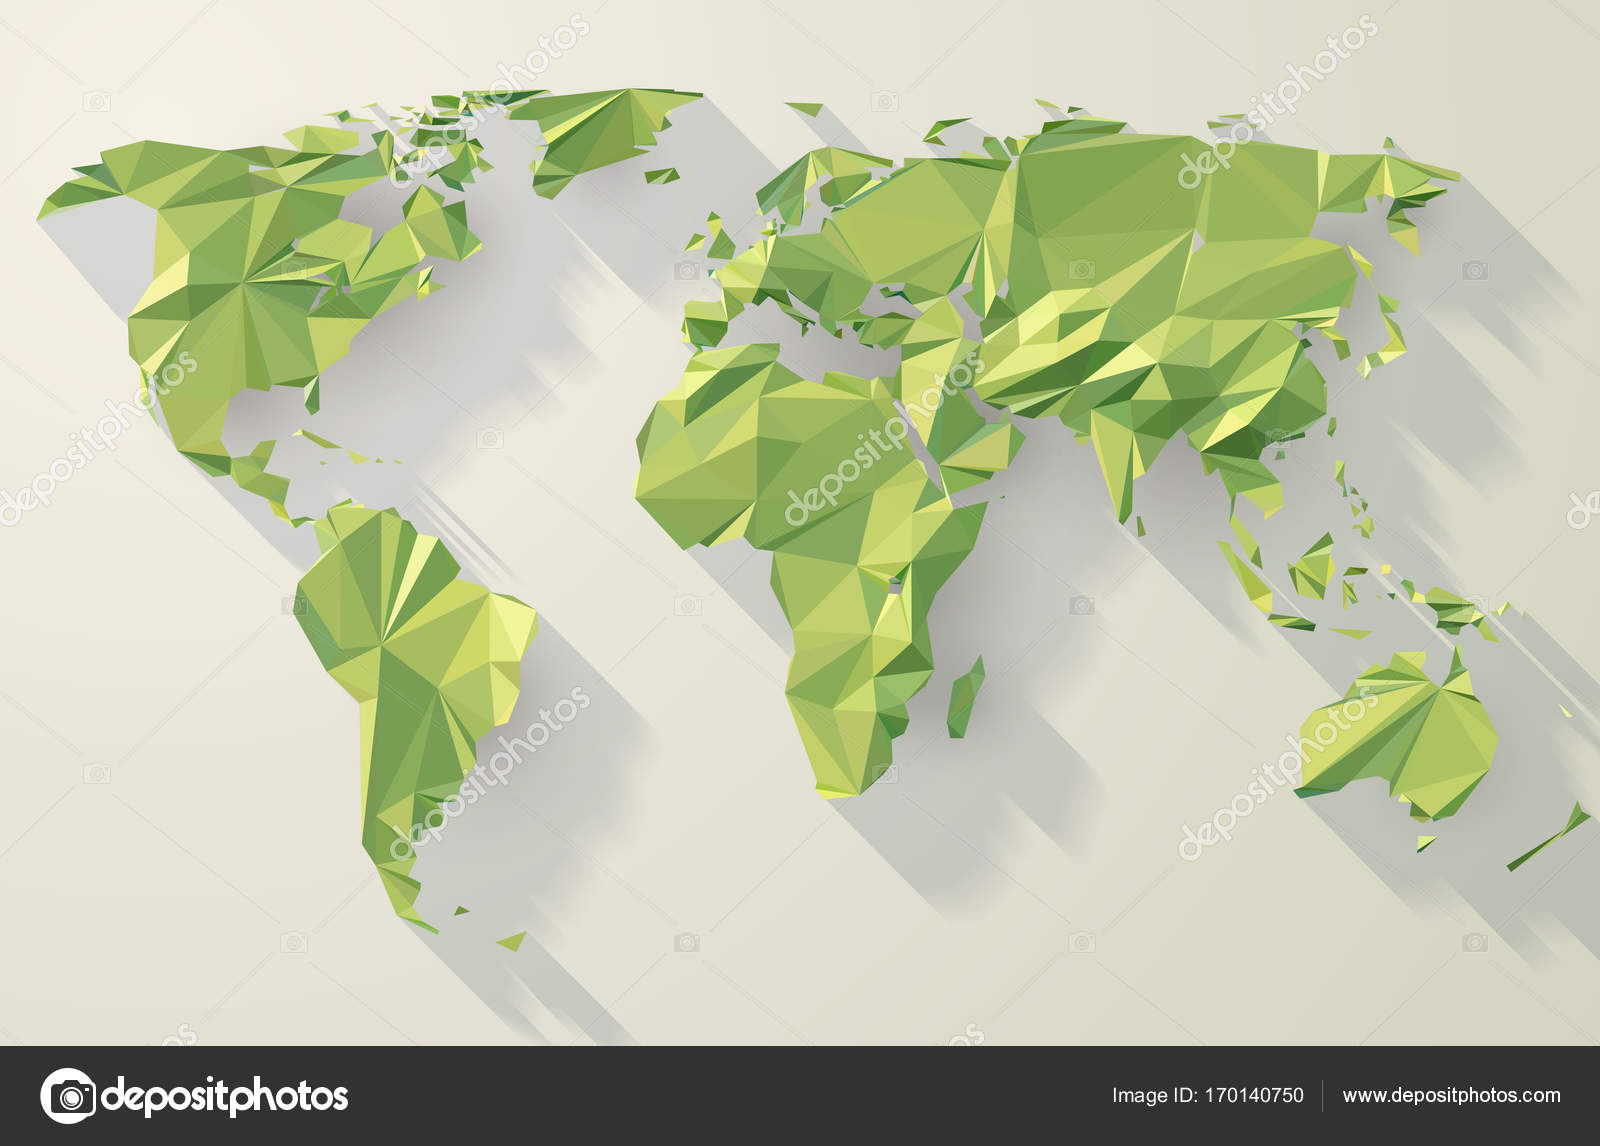 World map low poly design stock vector kundra 170140750 vector world map low poly design green origami planet illustration vector by kundra gumiabroncs